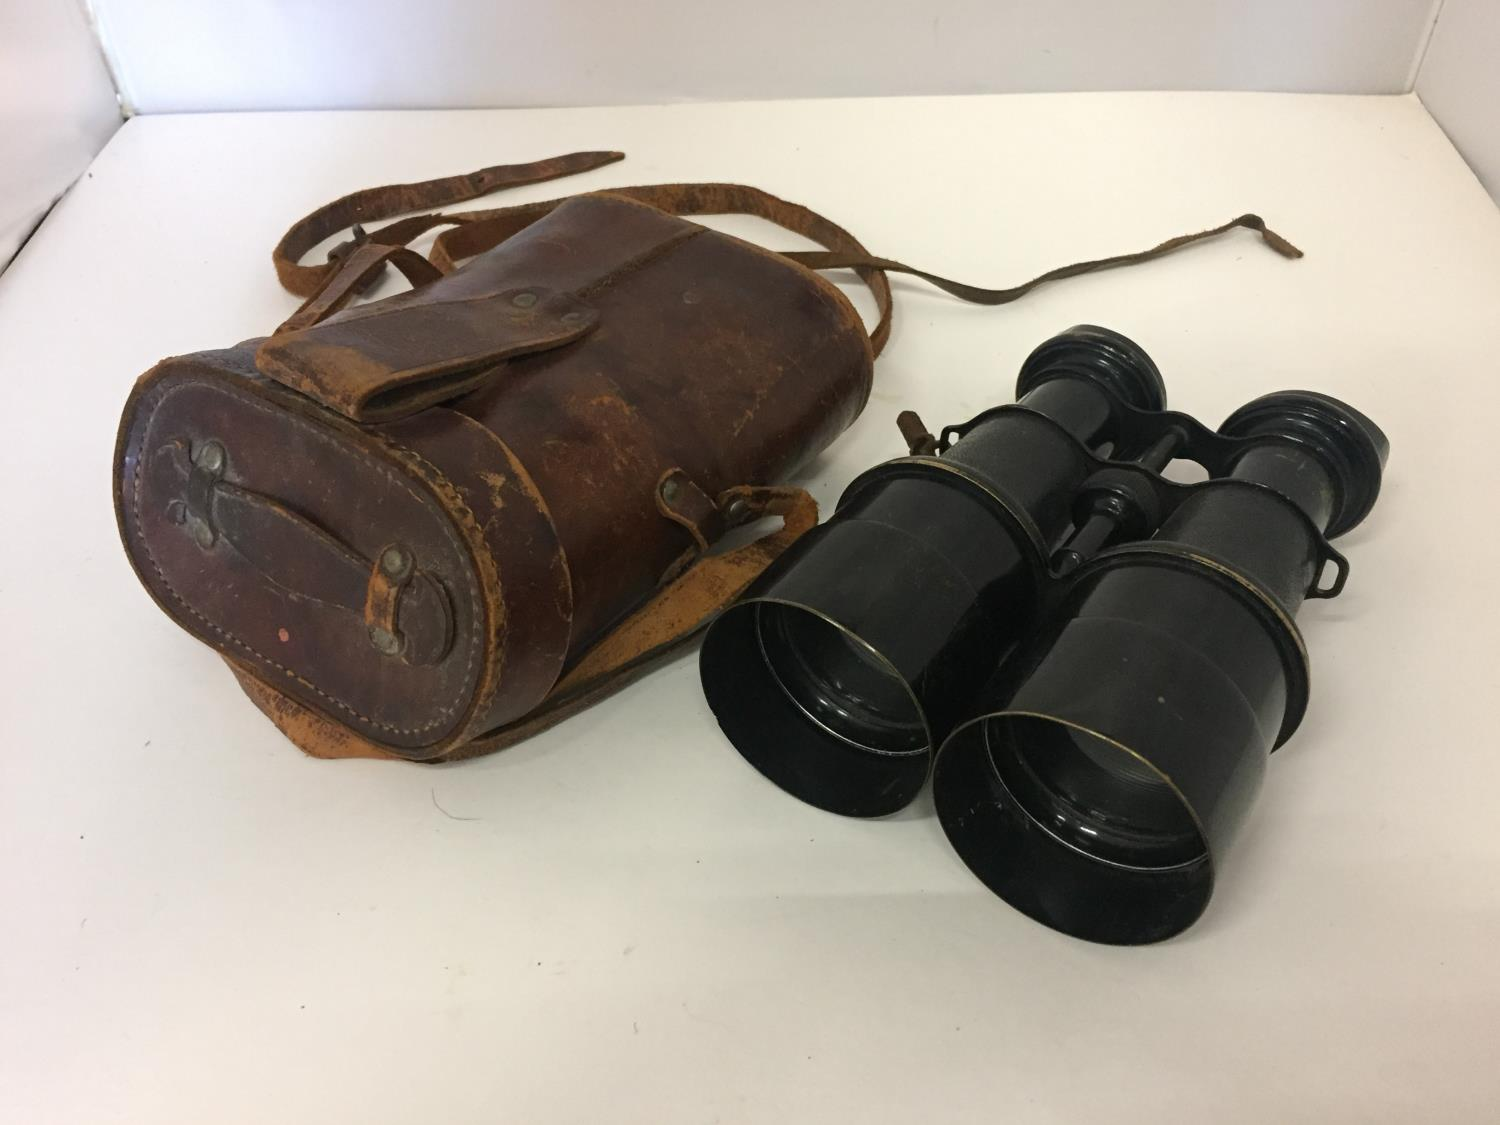 A PAIR OF EARLY 20TH CENTURY PILOTE BINOCULARS BY IRIS DE PARIS WITH LEATHER CASE